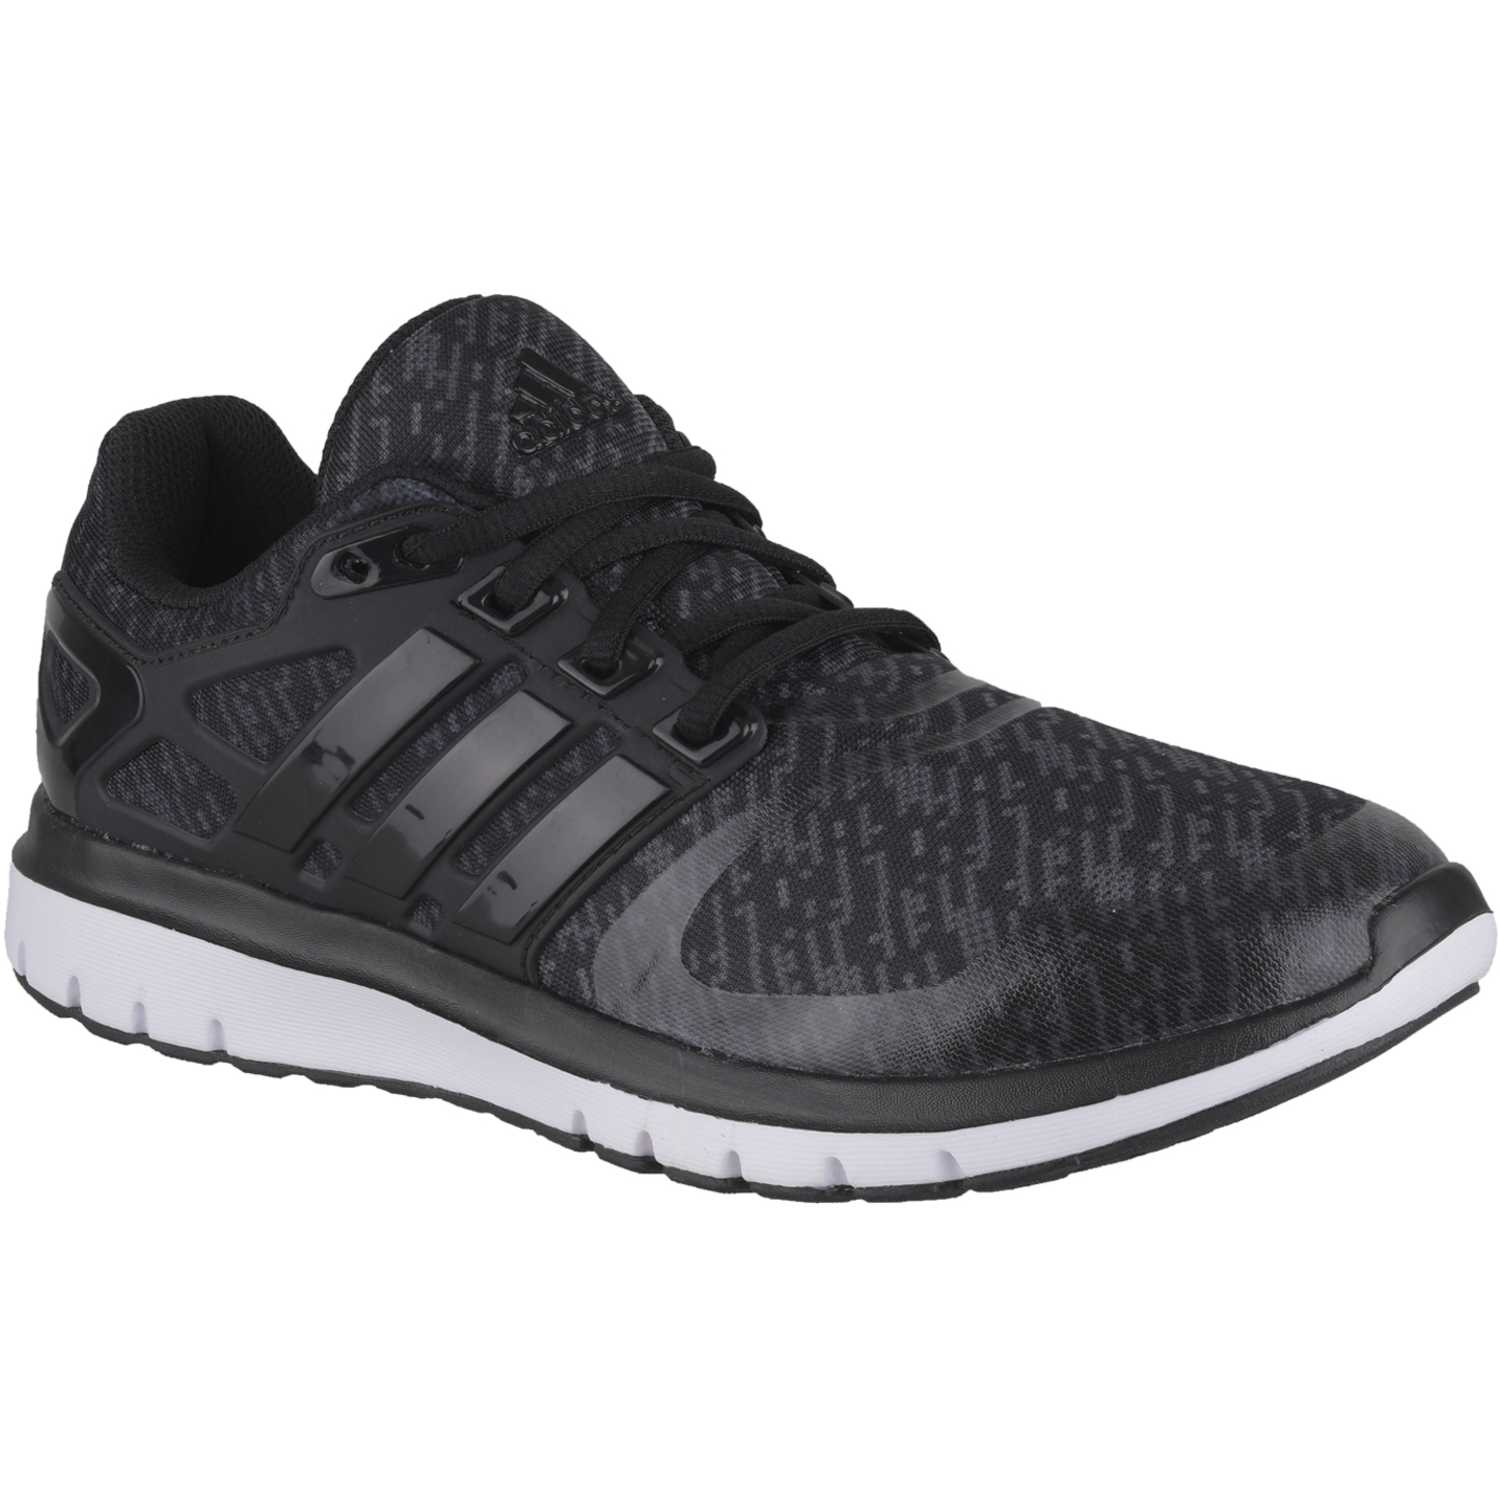 timeless design c65a3 855e8 Zapatilla de Mujer Adidas Negro   blanco energy cloud v